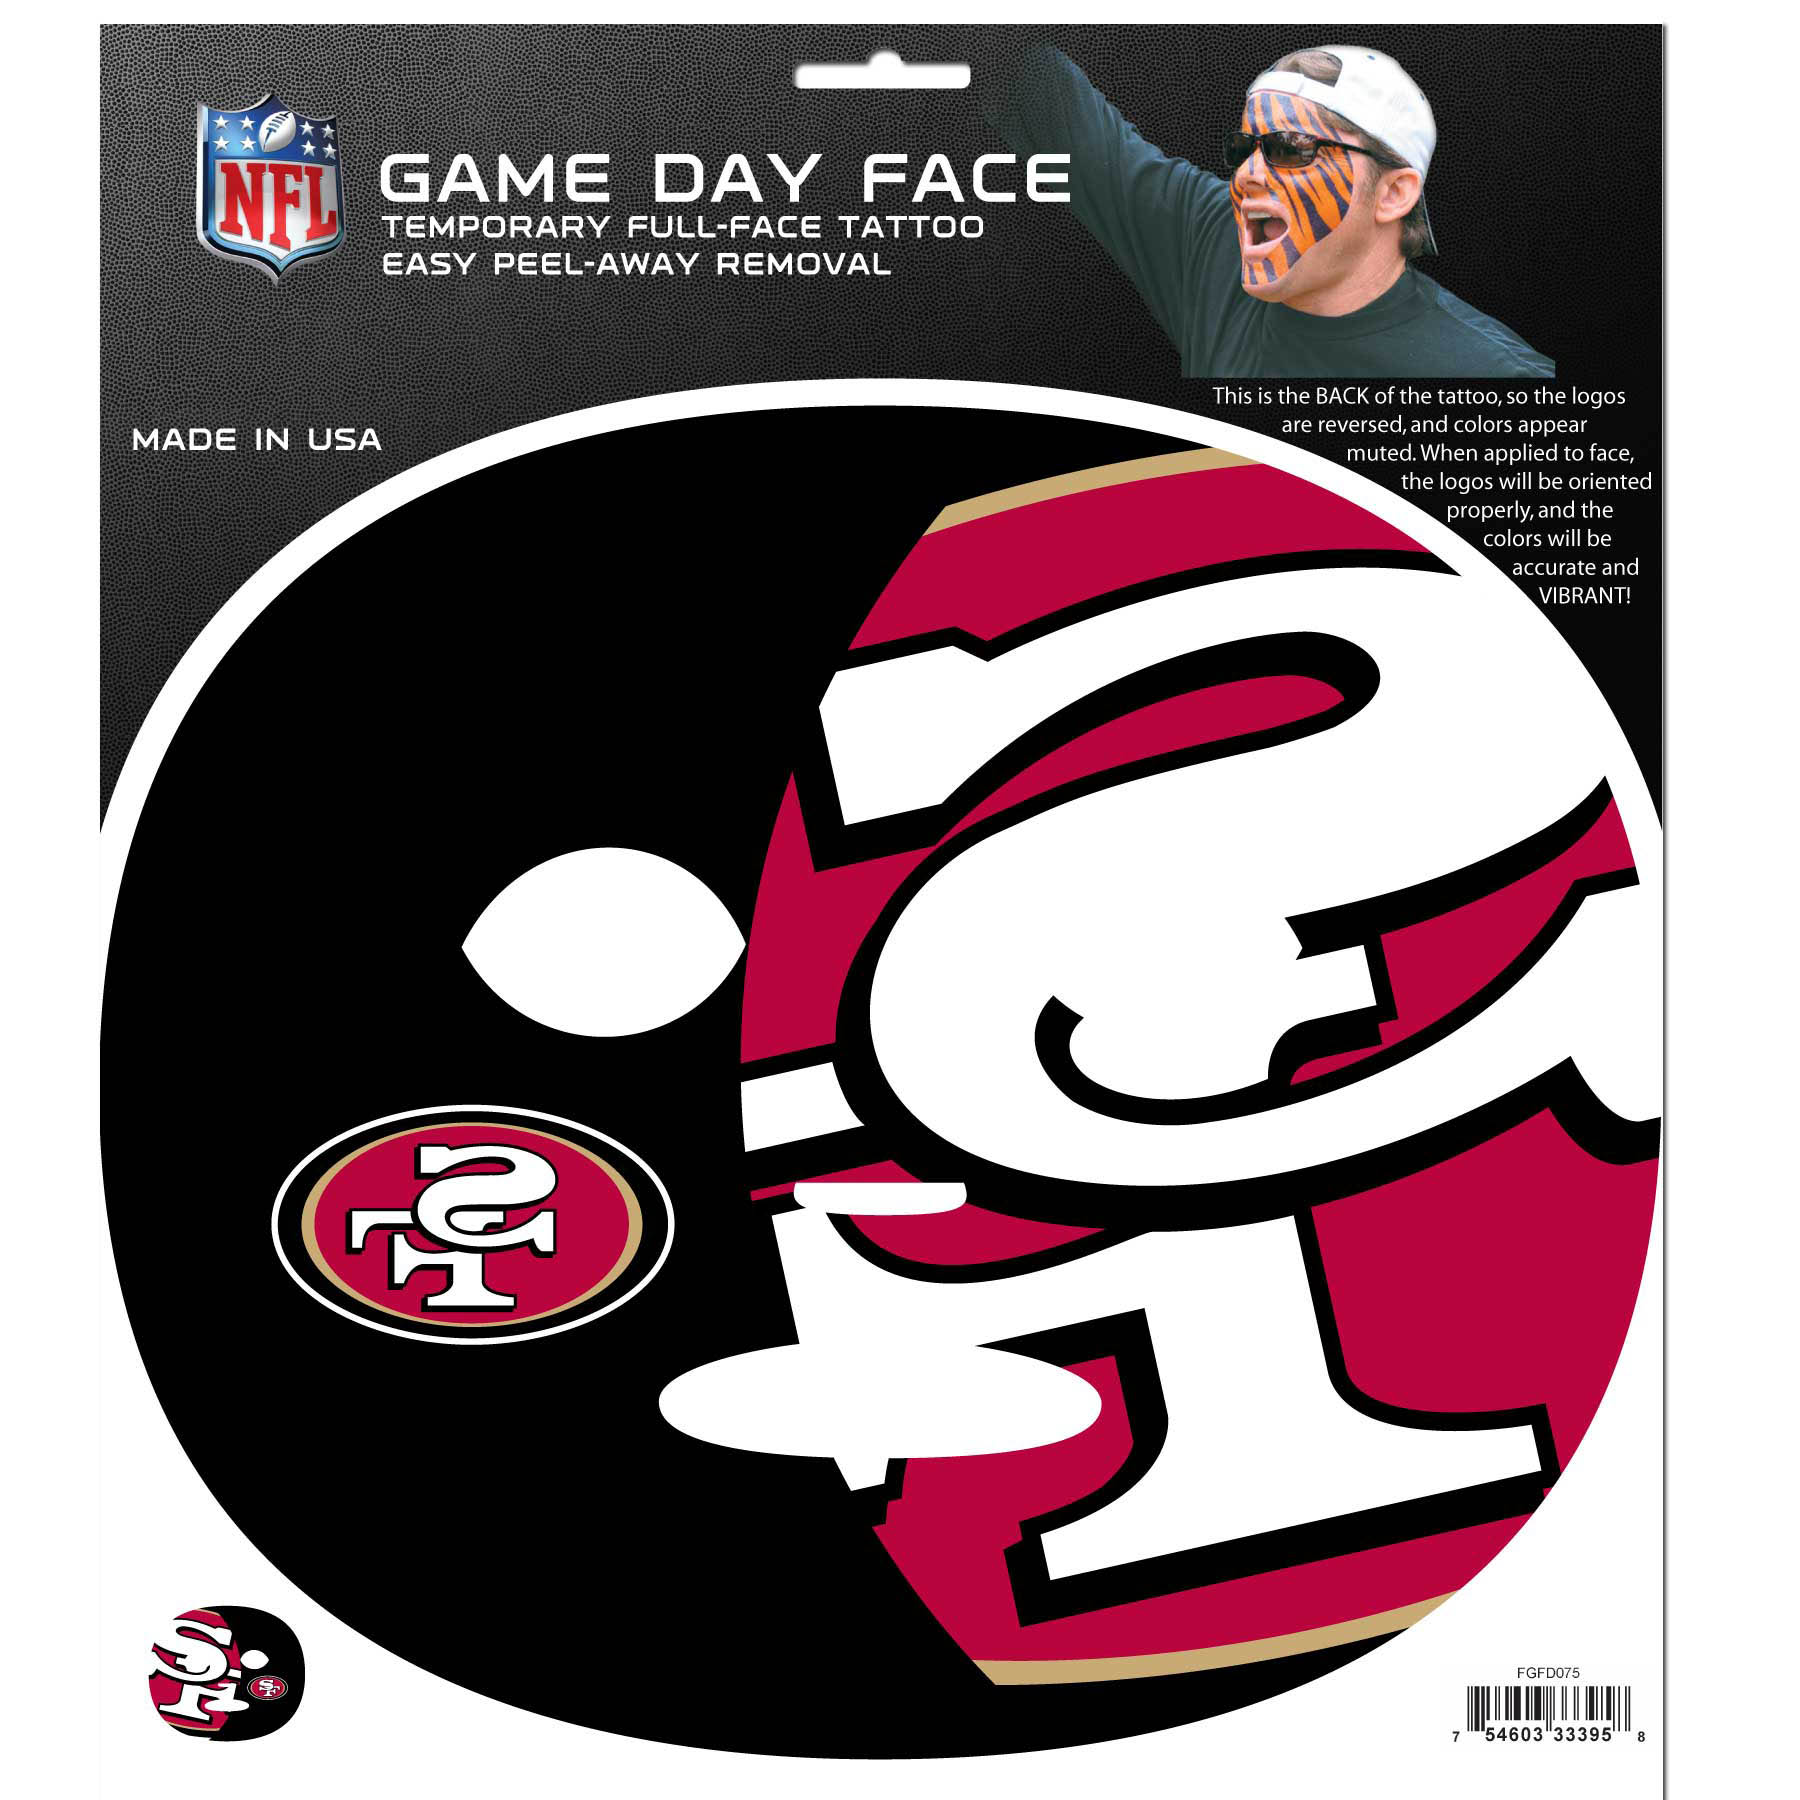 San Francisco 49ers Set of 8 Game Day Faces - No better way to show your team pride than by painting your face. Siskiyou's Game Day Face Temporary Tattoo isn't your typical face paint. It is a water based application that doesn't smudge, smear or sweat off while you're wearing it and easily peels off after you're done celebrating your team's big Win! The temporary tattoo is large enough to trim down to fit your face. Our Game Day Face Temporary Tattoo's are fun for fans of all ages. You may have seen our product before, these are the same Temporary Face Tattoos as pitched on ABC's Shark Tank.